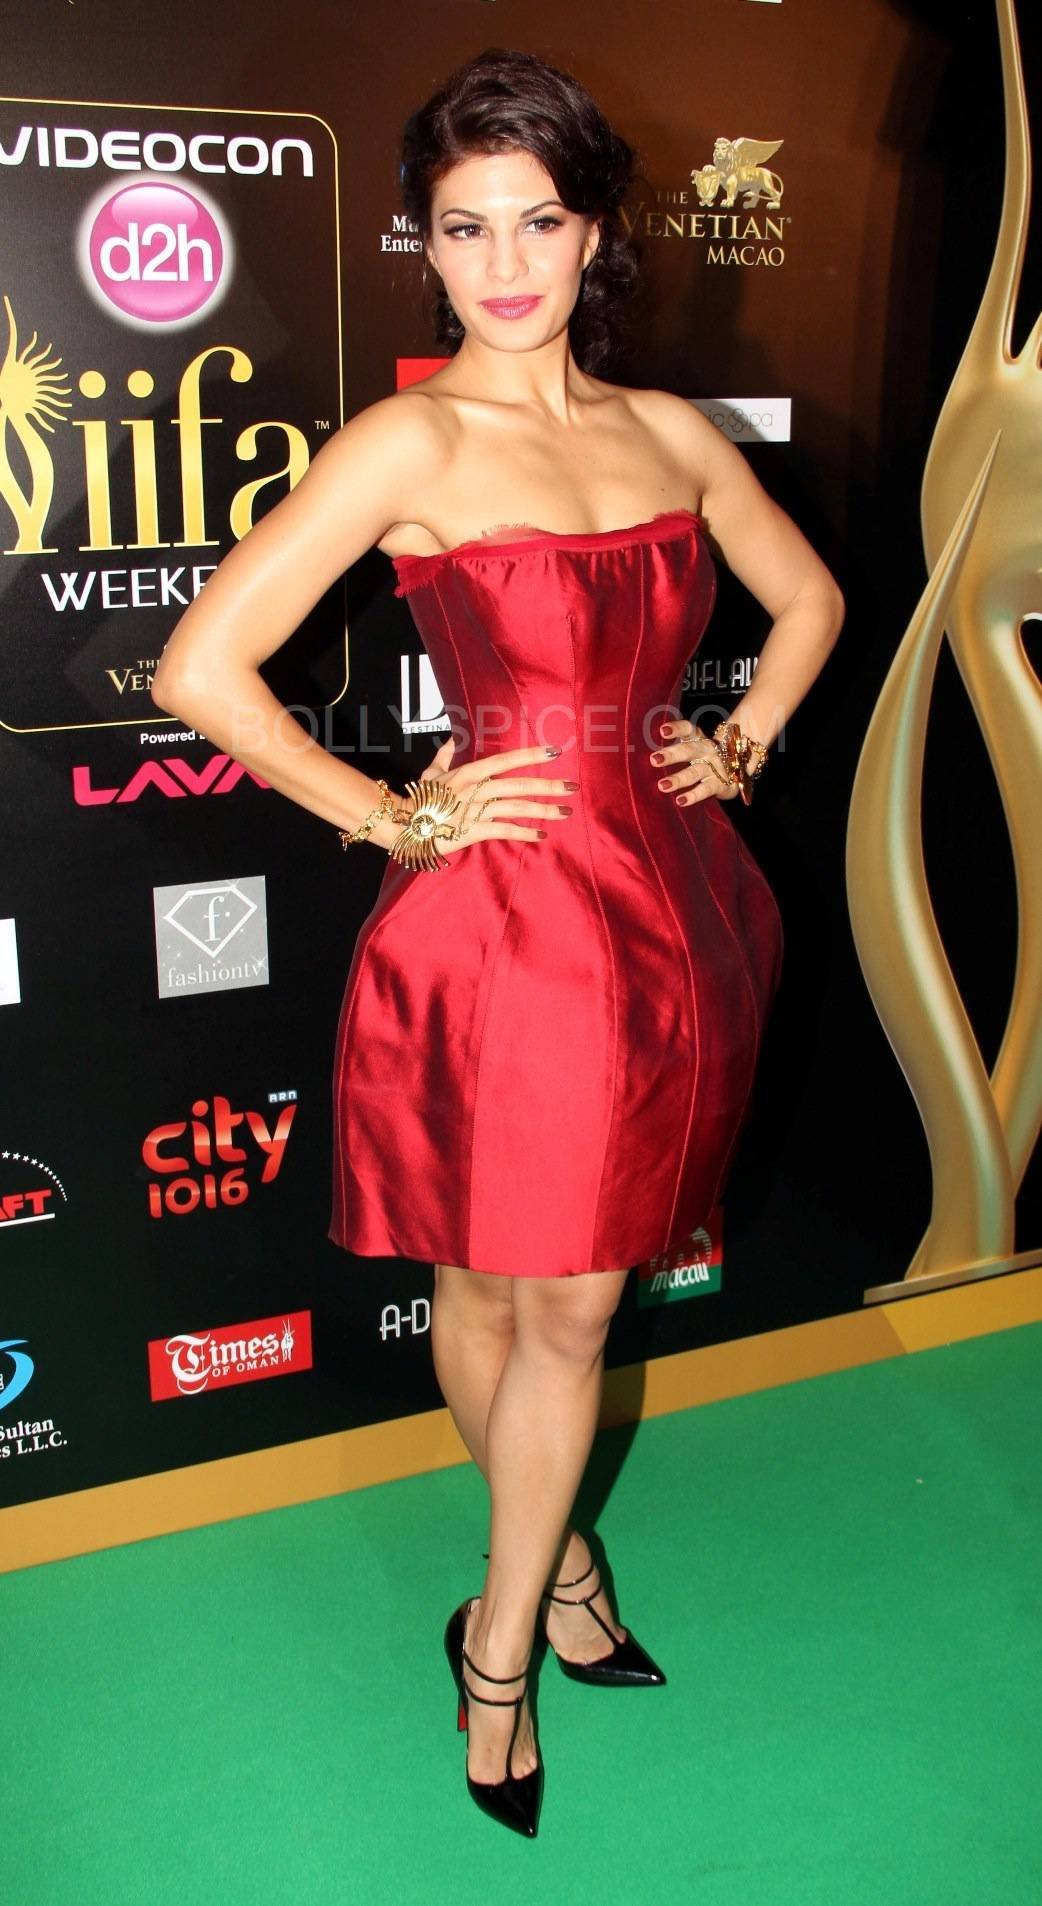 Jacquline Fernandez at IIFA Rocks Green carpet More from IIFA Rocks including winners and more Green Carpet pics! Pics added!